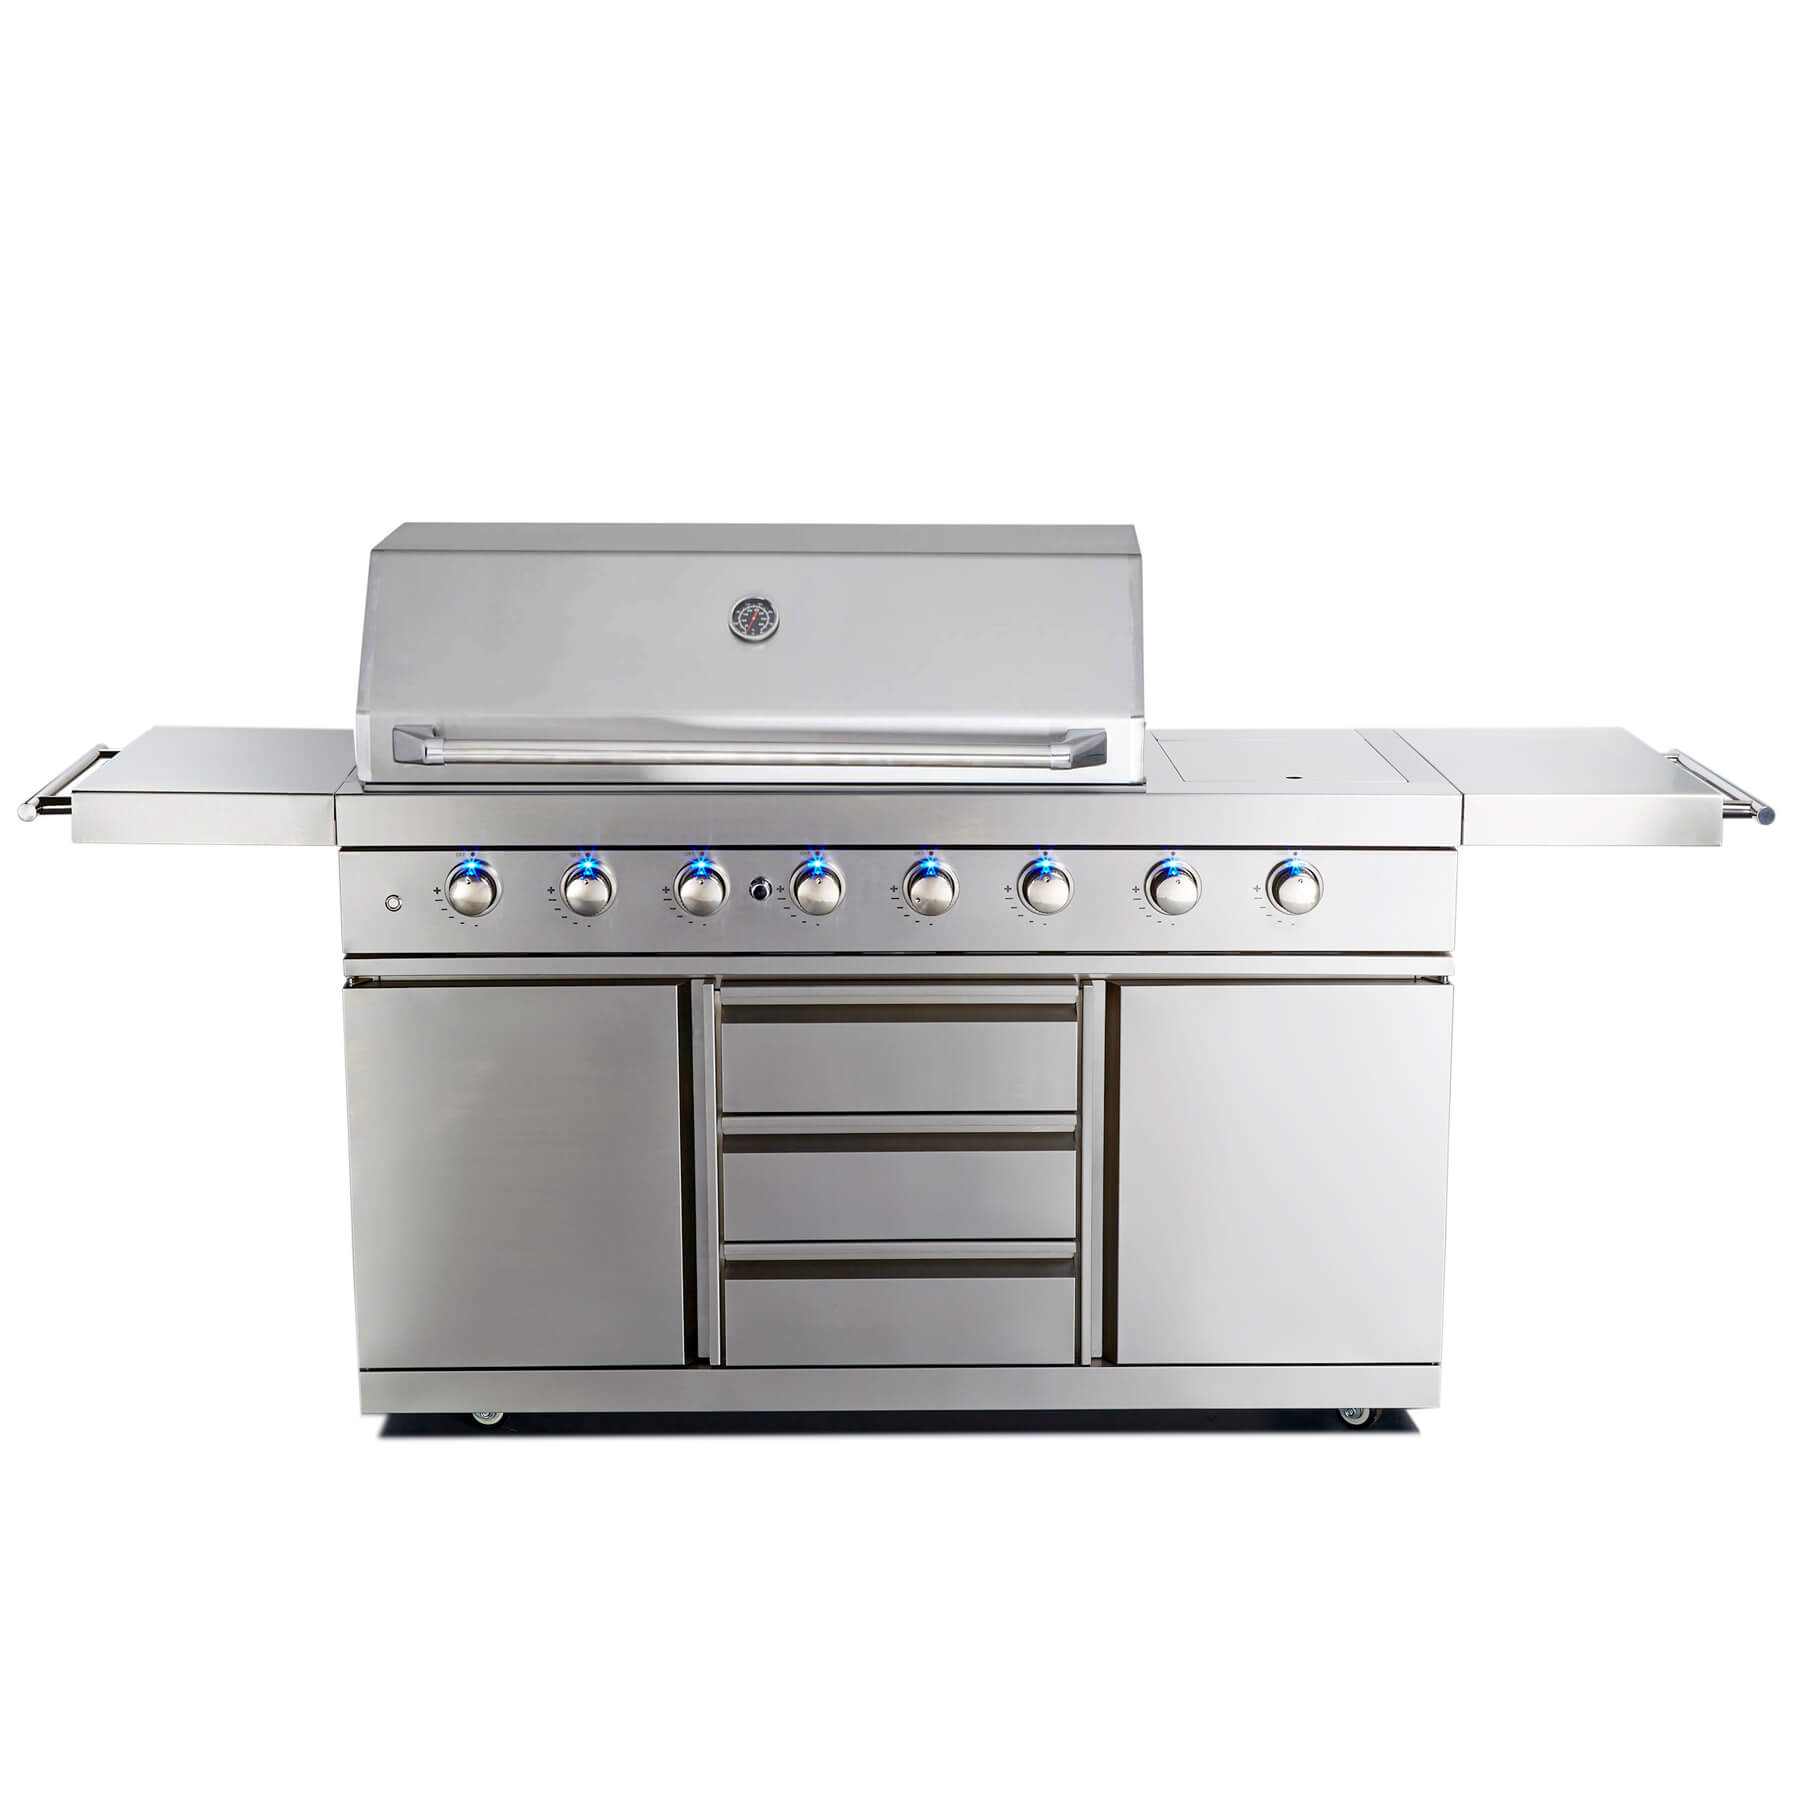 top-line-allgrill-ultra-mit-airsystem